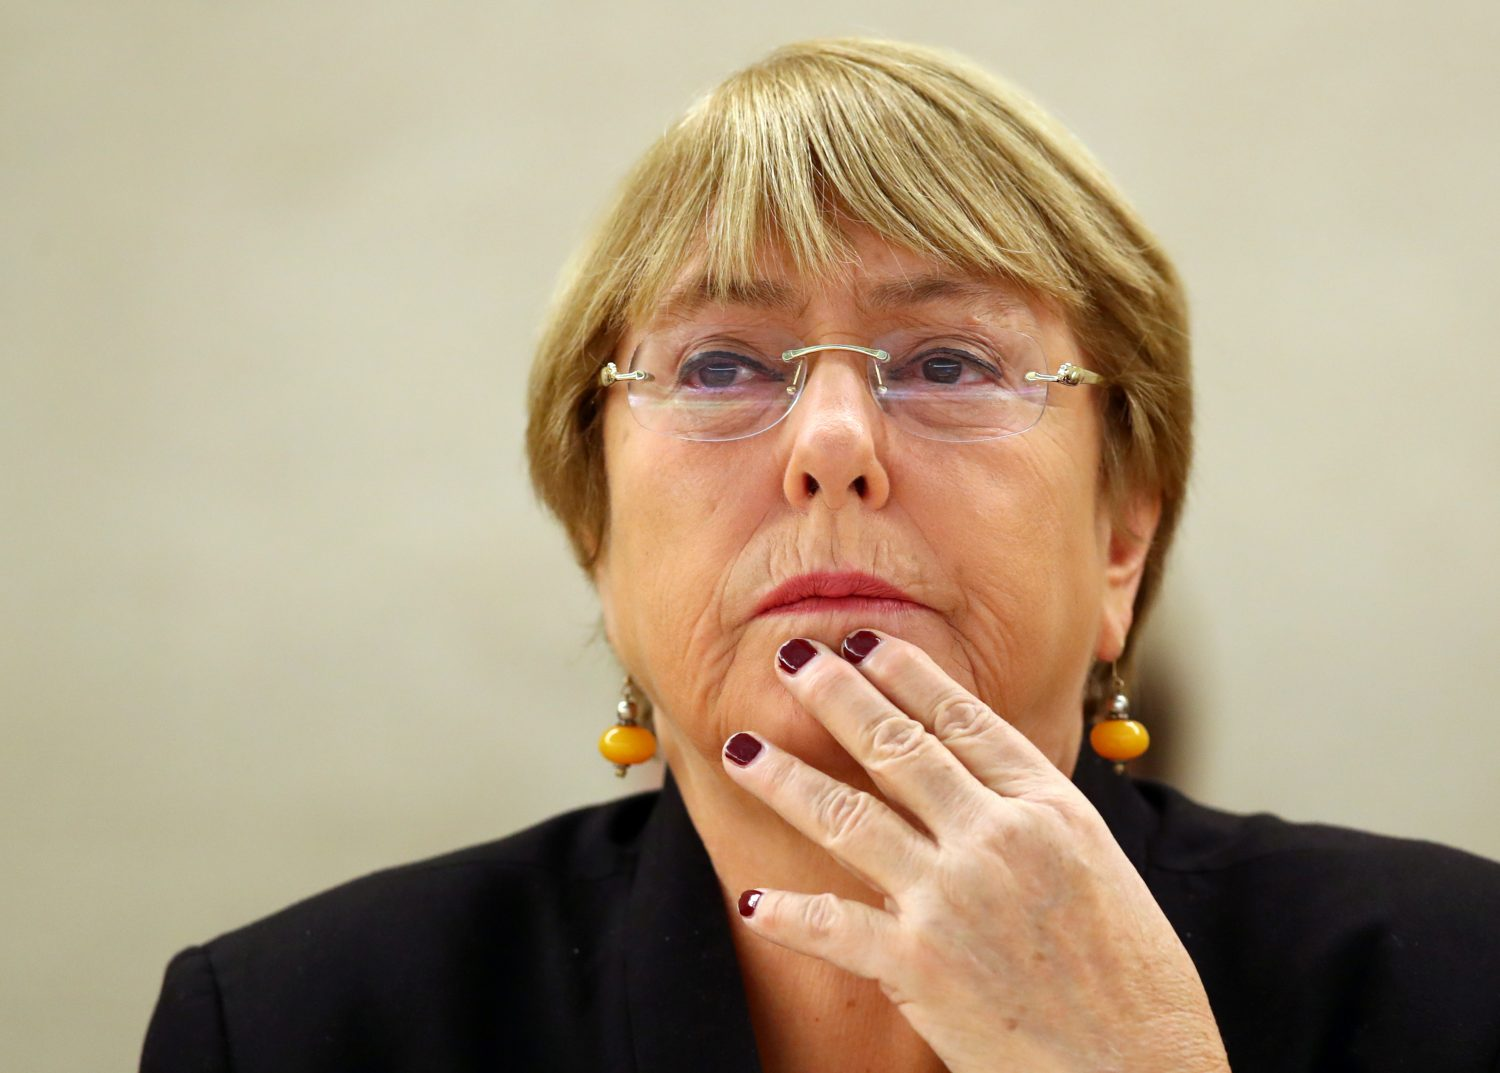 FILE PHOTO - U.N. High Commissioner for Human Rights Michelle Bachelet attends a session of the Human Rights Council at the United Nations in Geneva, Switzerland, September 9, 2019. REUTERS/Denis Balibouse